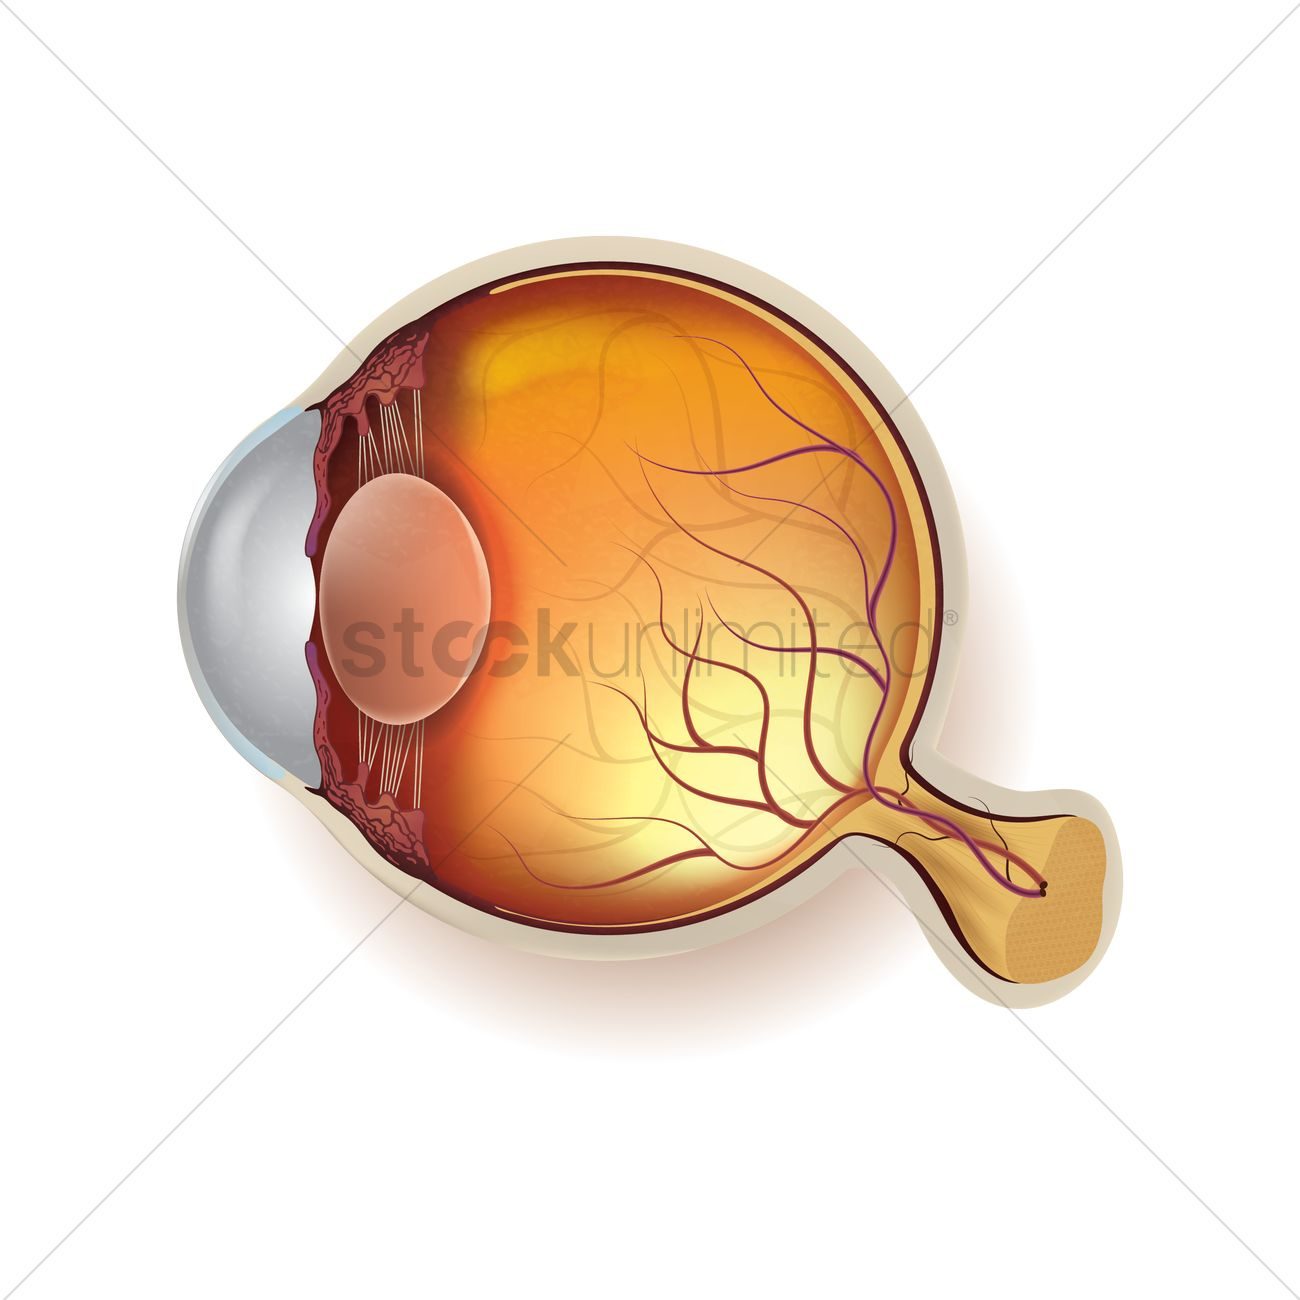 Anatomy of a normal eyeball Vector Image - 1866509 | StockUnlimited